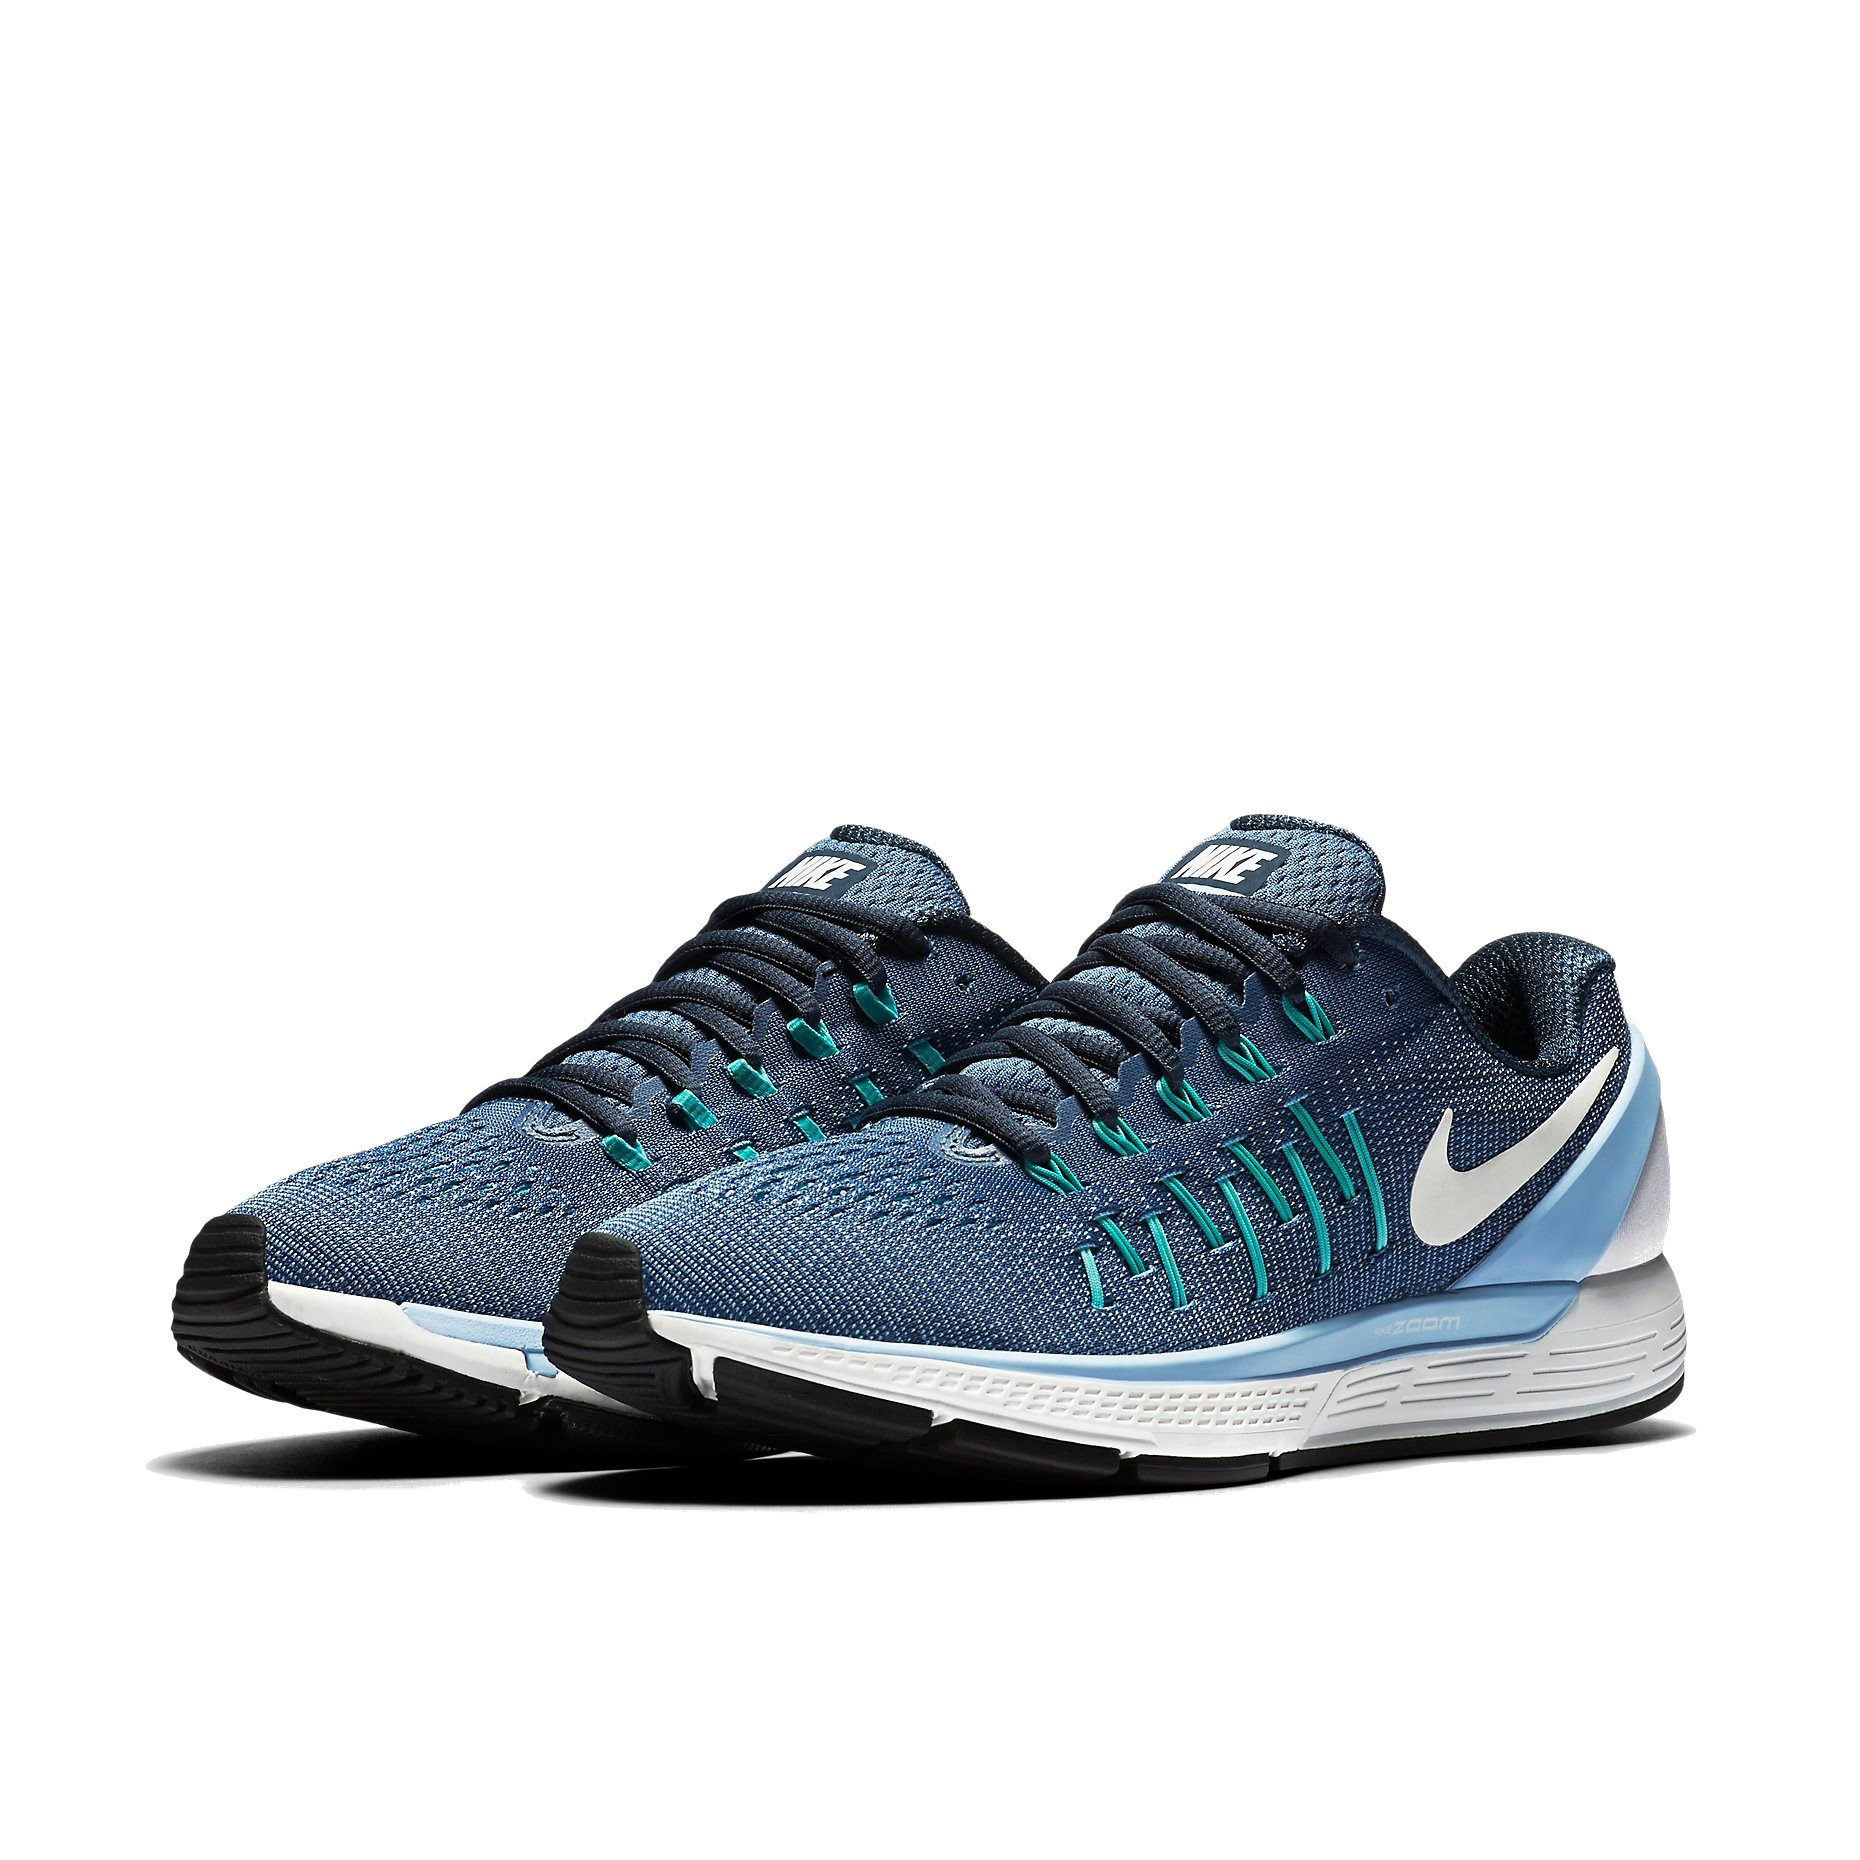 Nike Women's Air Zoom Odyssey-2 Running Shoe - 12 B(M) US